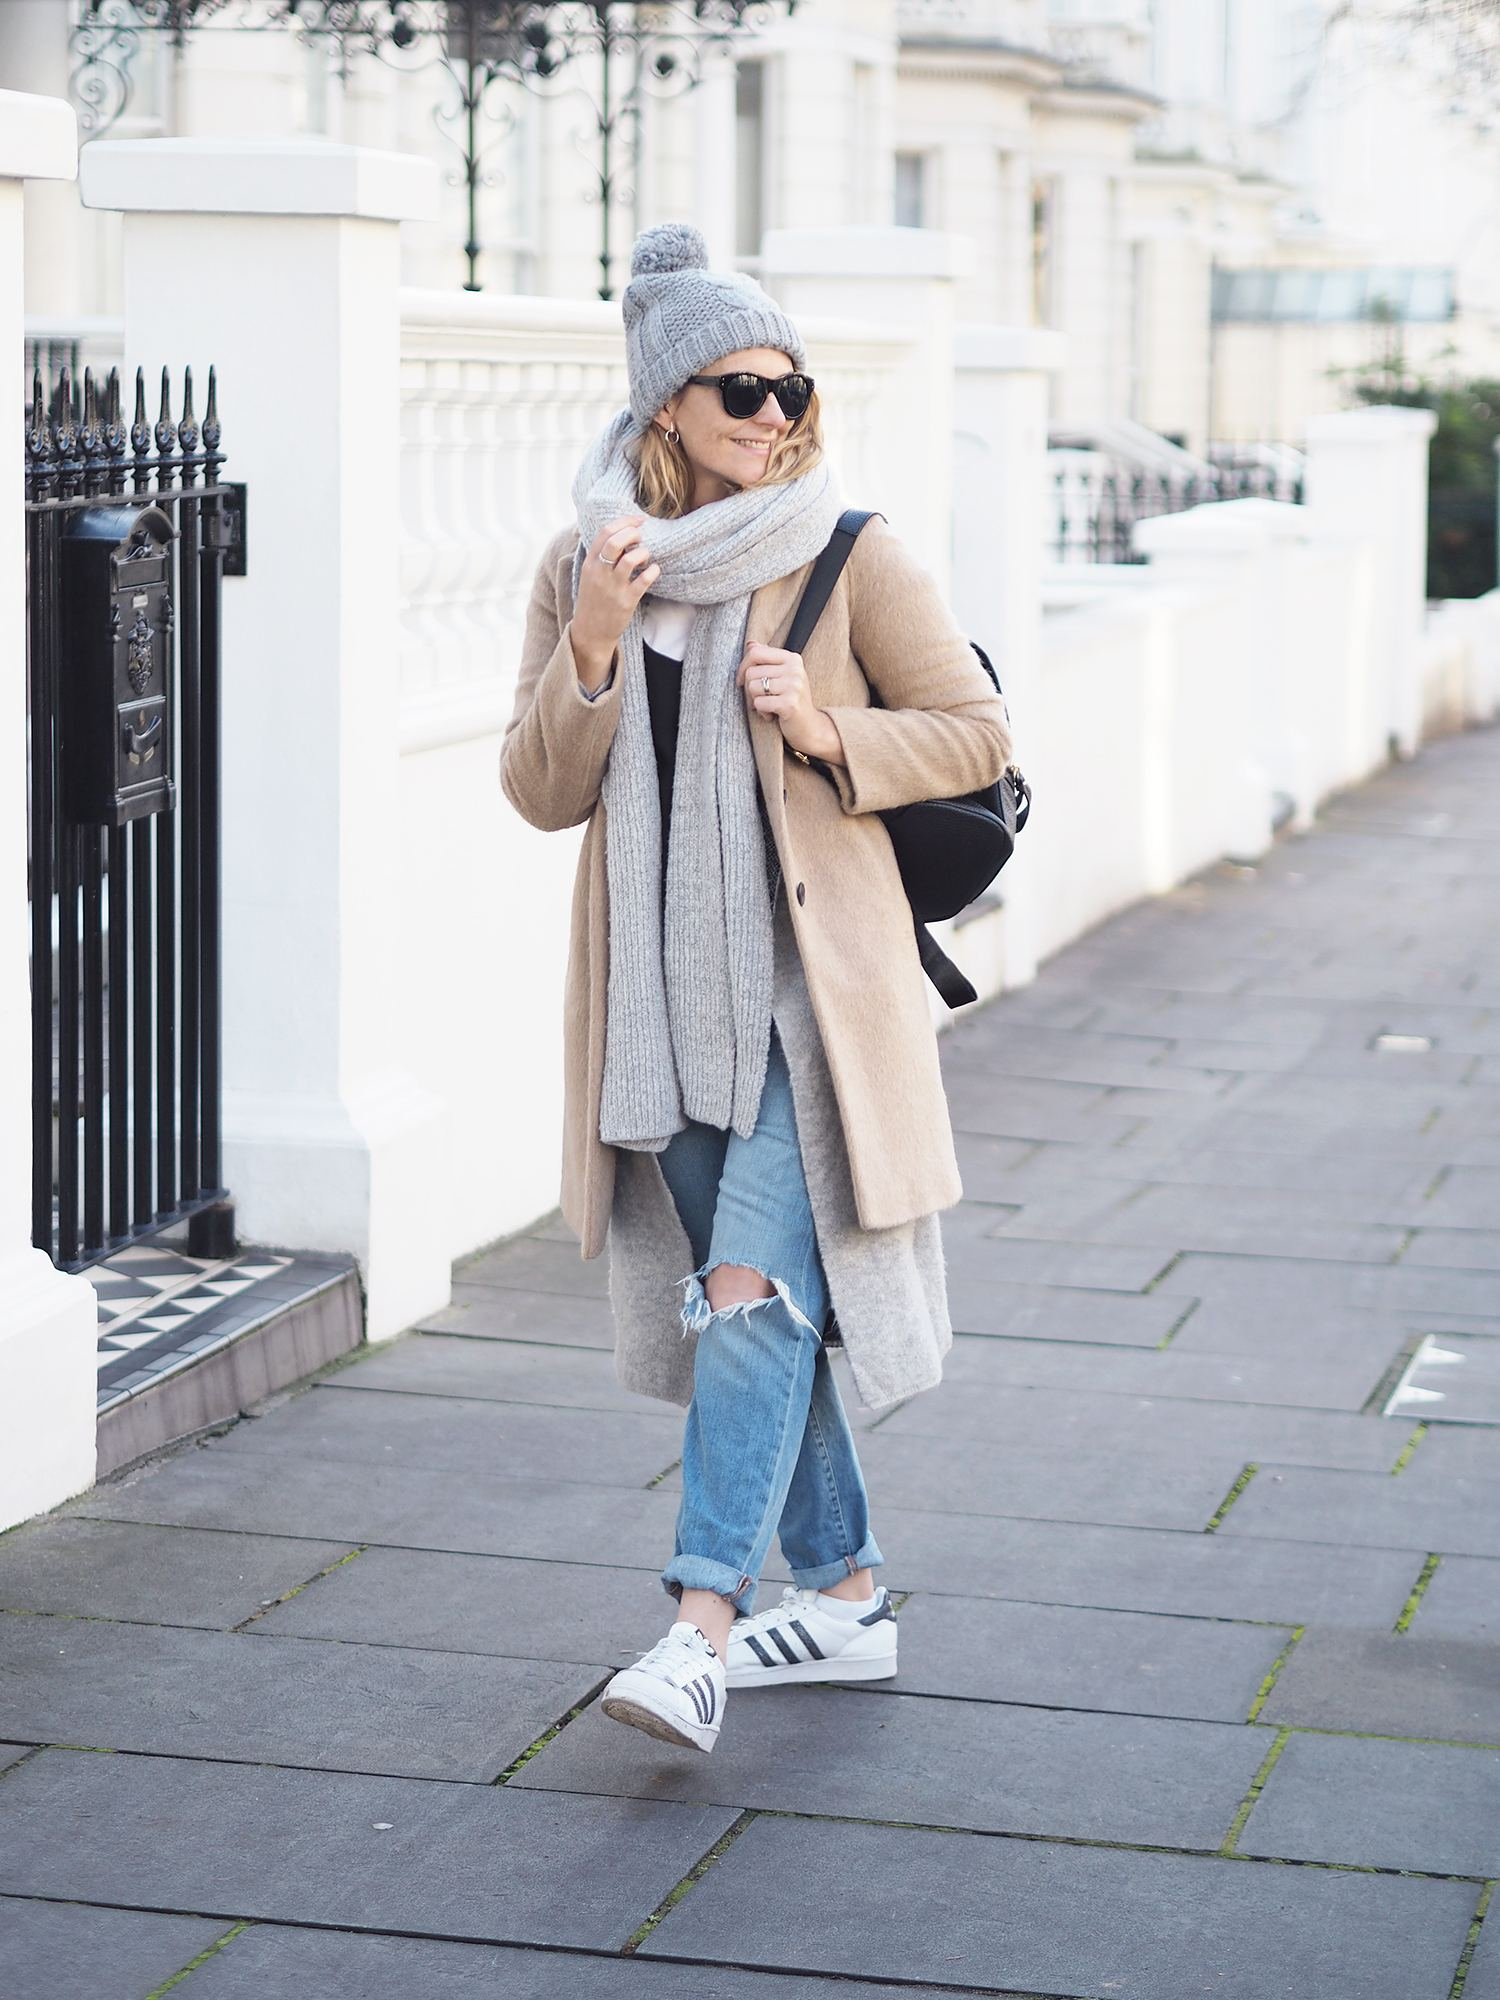 layering up your outfit for winter